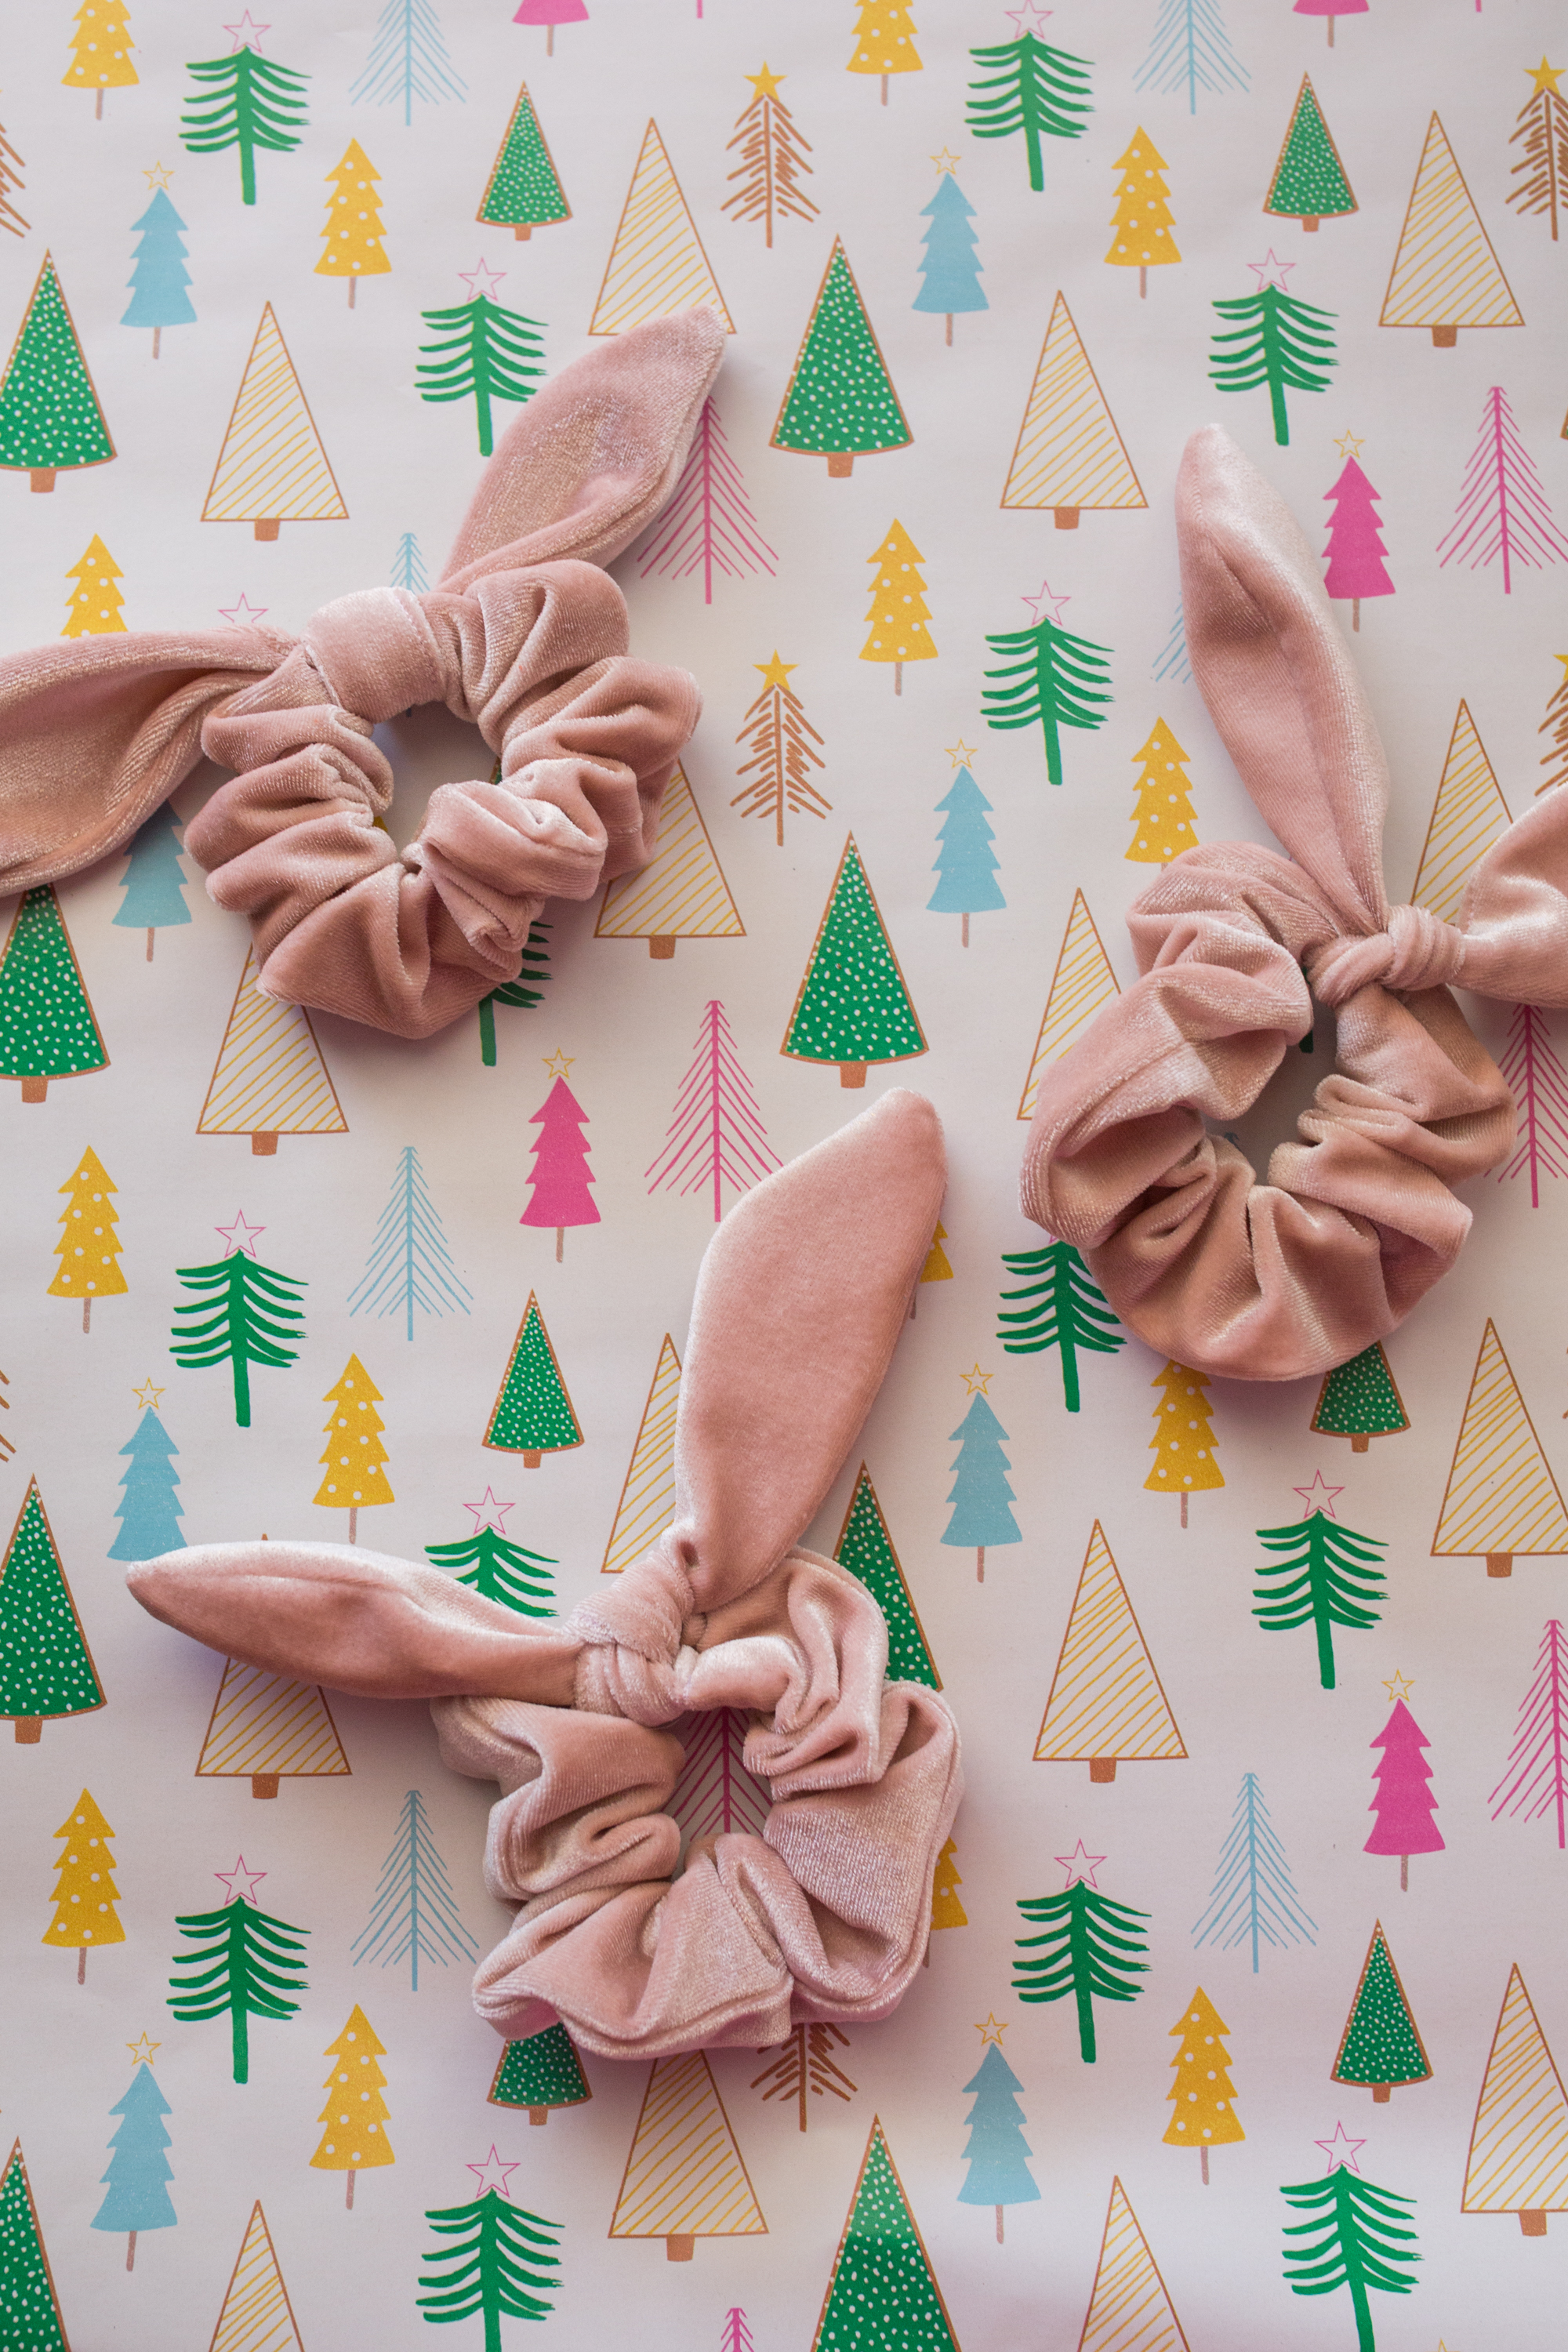 Women Hair Accessory / Hair Accessories / Bows / Bow Hair Scrunchie / Preppy Outfit / Preppy Style - Sunshine Style, A Florida Fashion and Lifestyle Blog